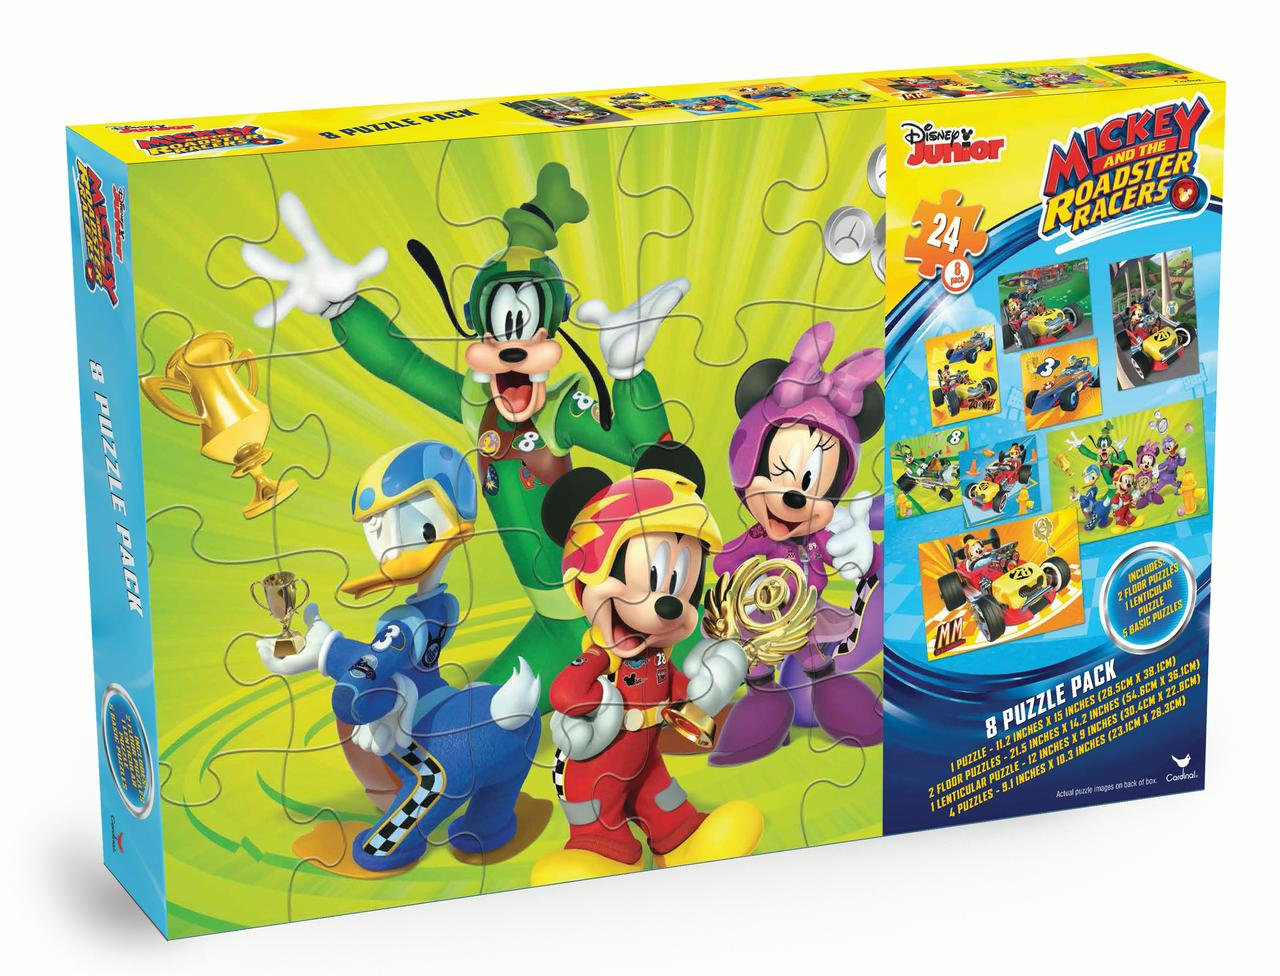 <p>Disneys Mickey and the Roadster Racers 8-Pack Puzzle Box< p> by Spin Master Ltd